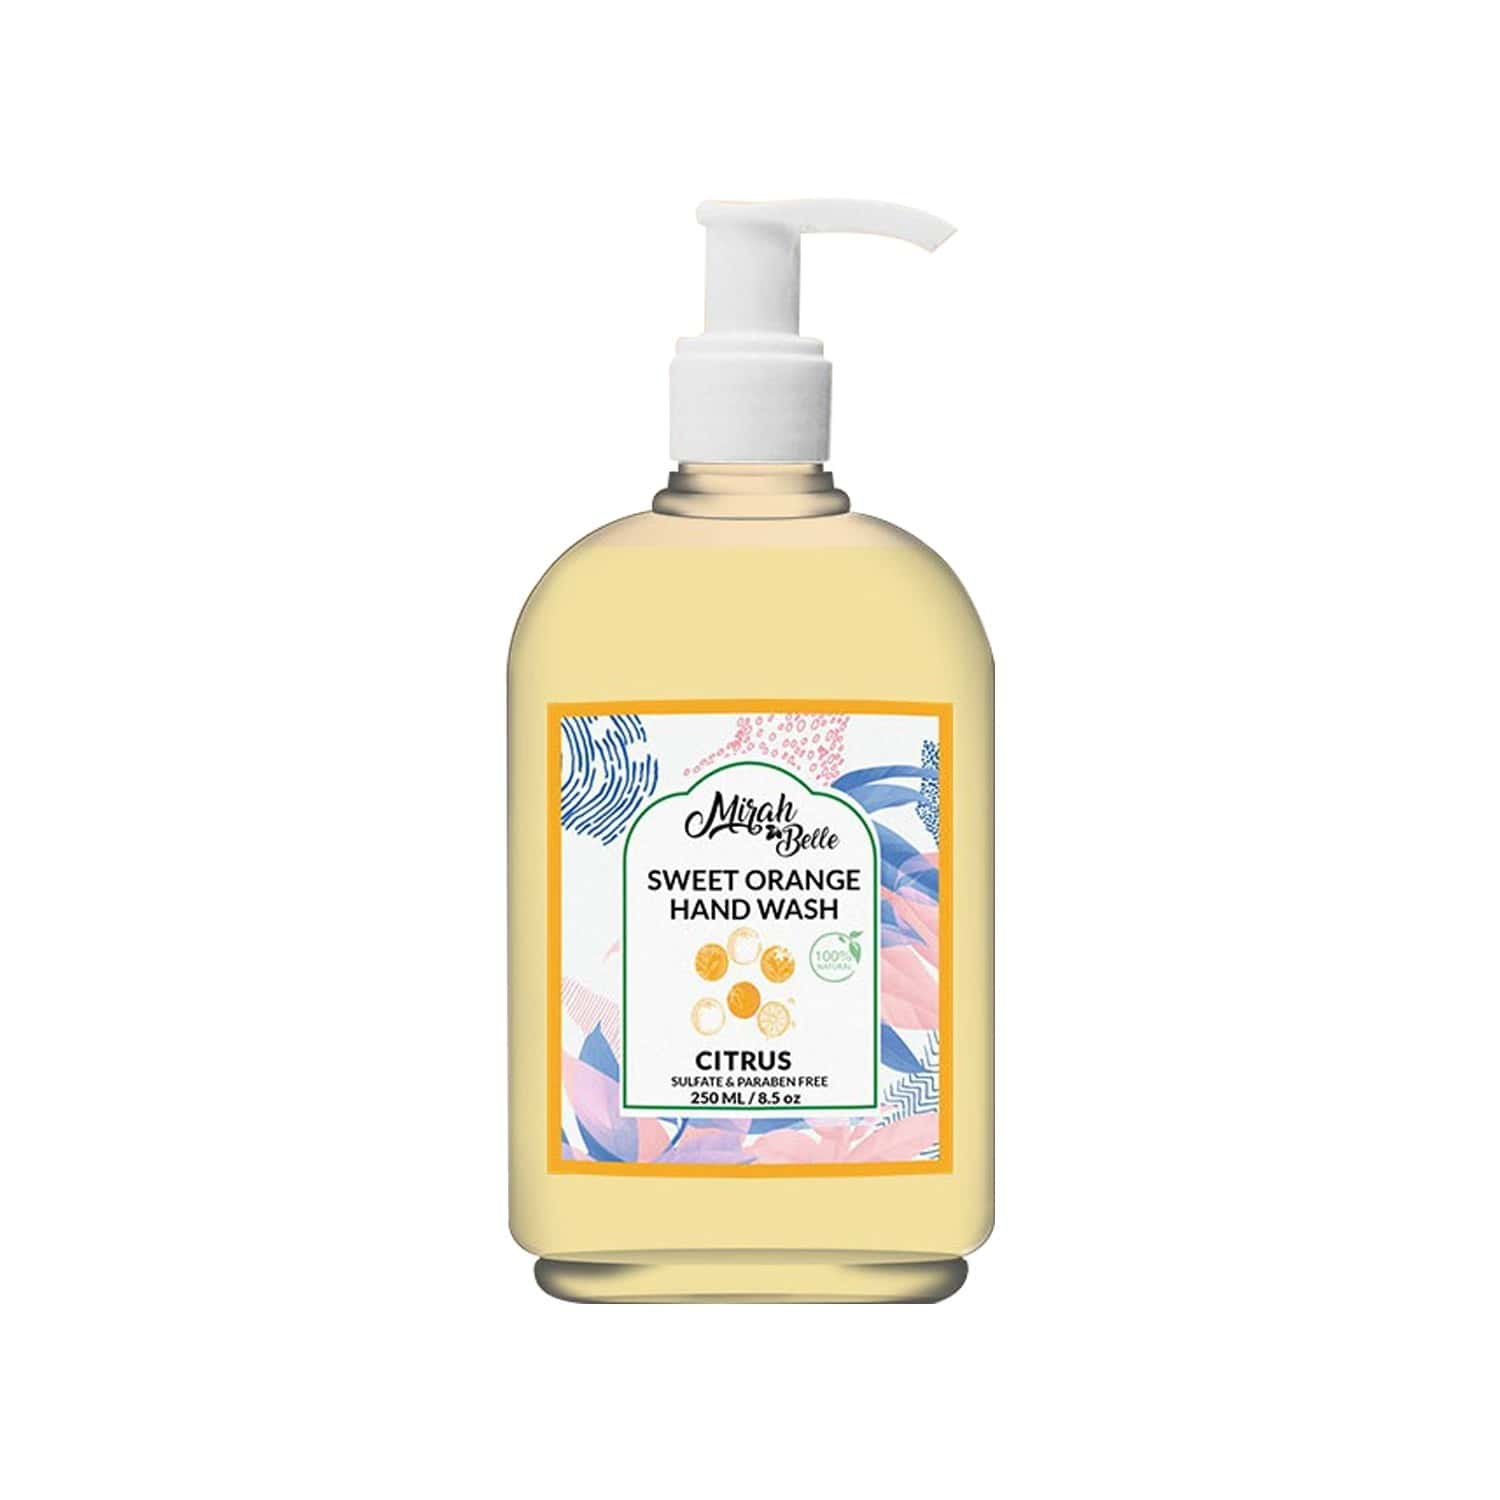 Mirah Belle Sweet Orange Hand Wash (citrus) - 250ml